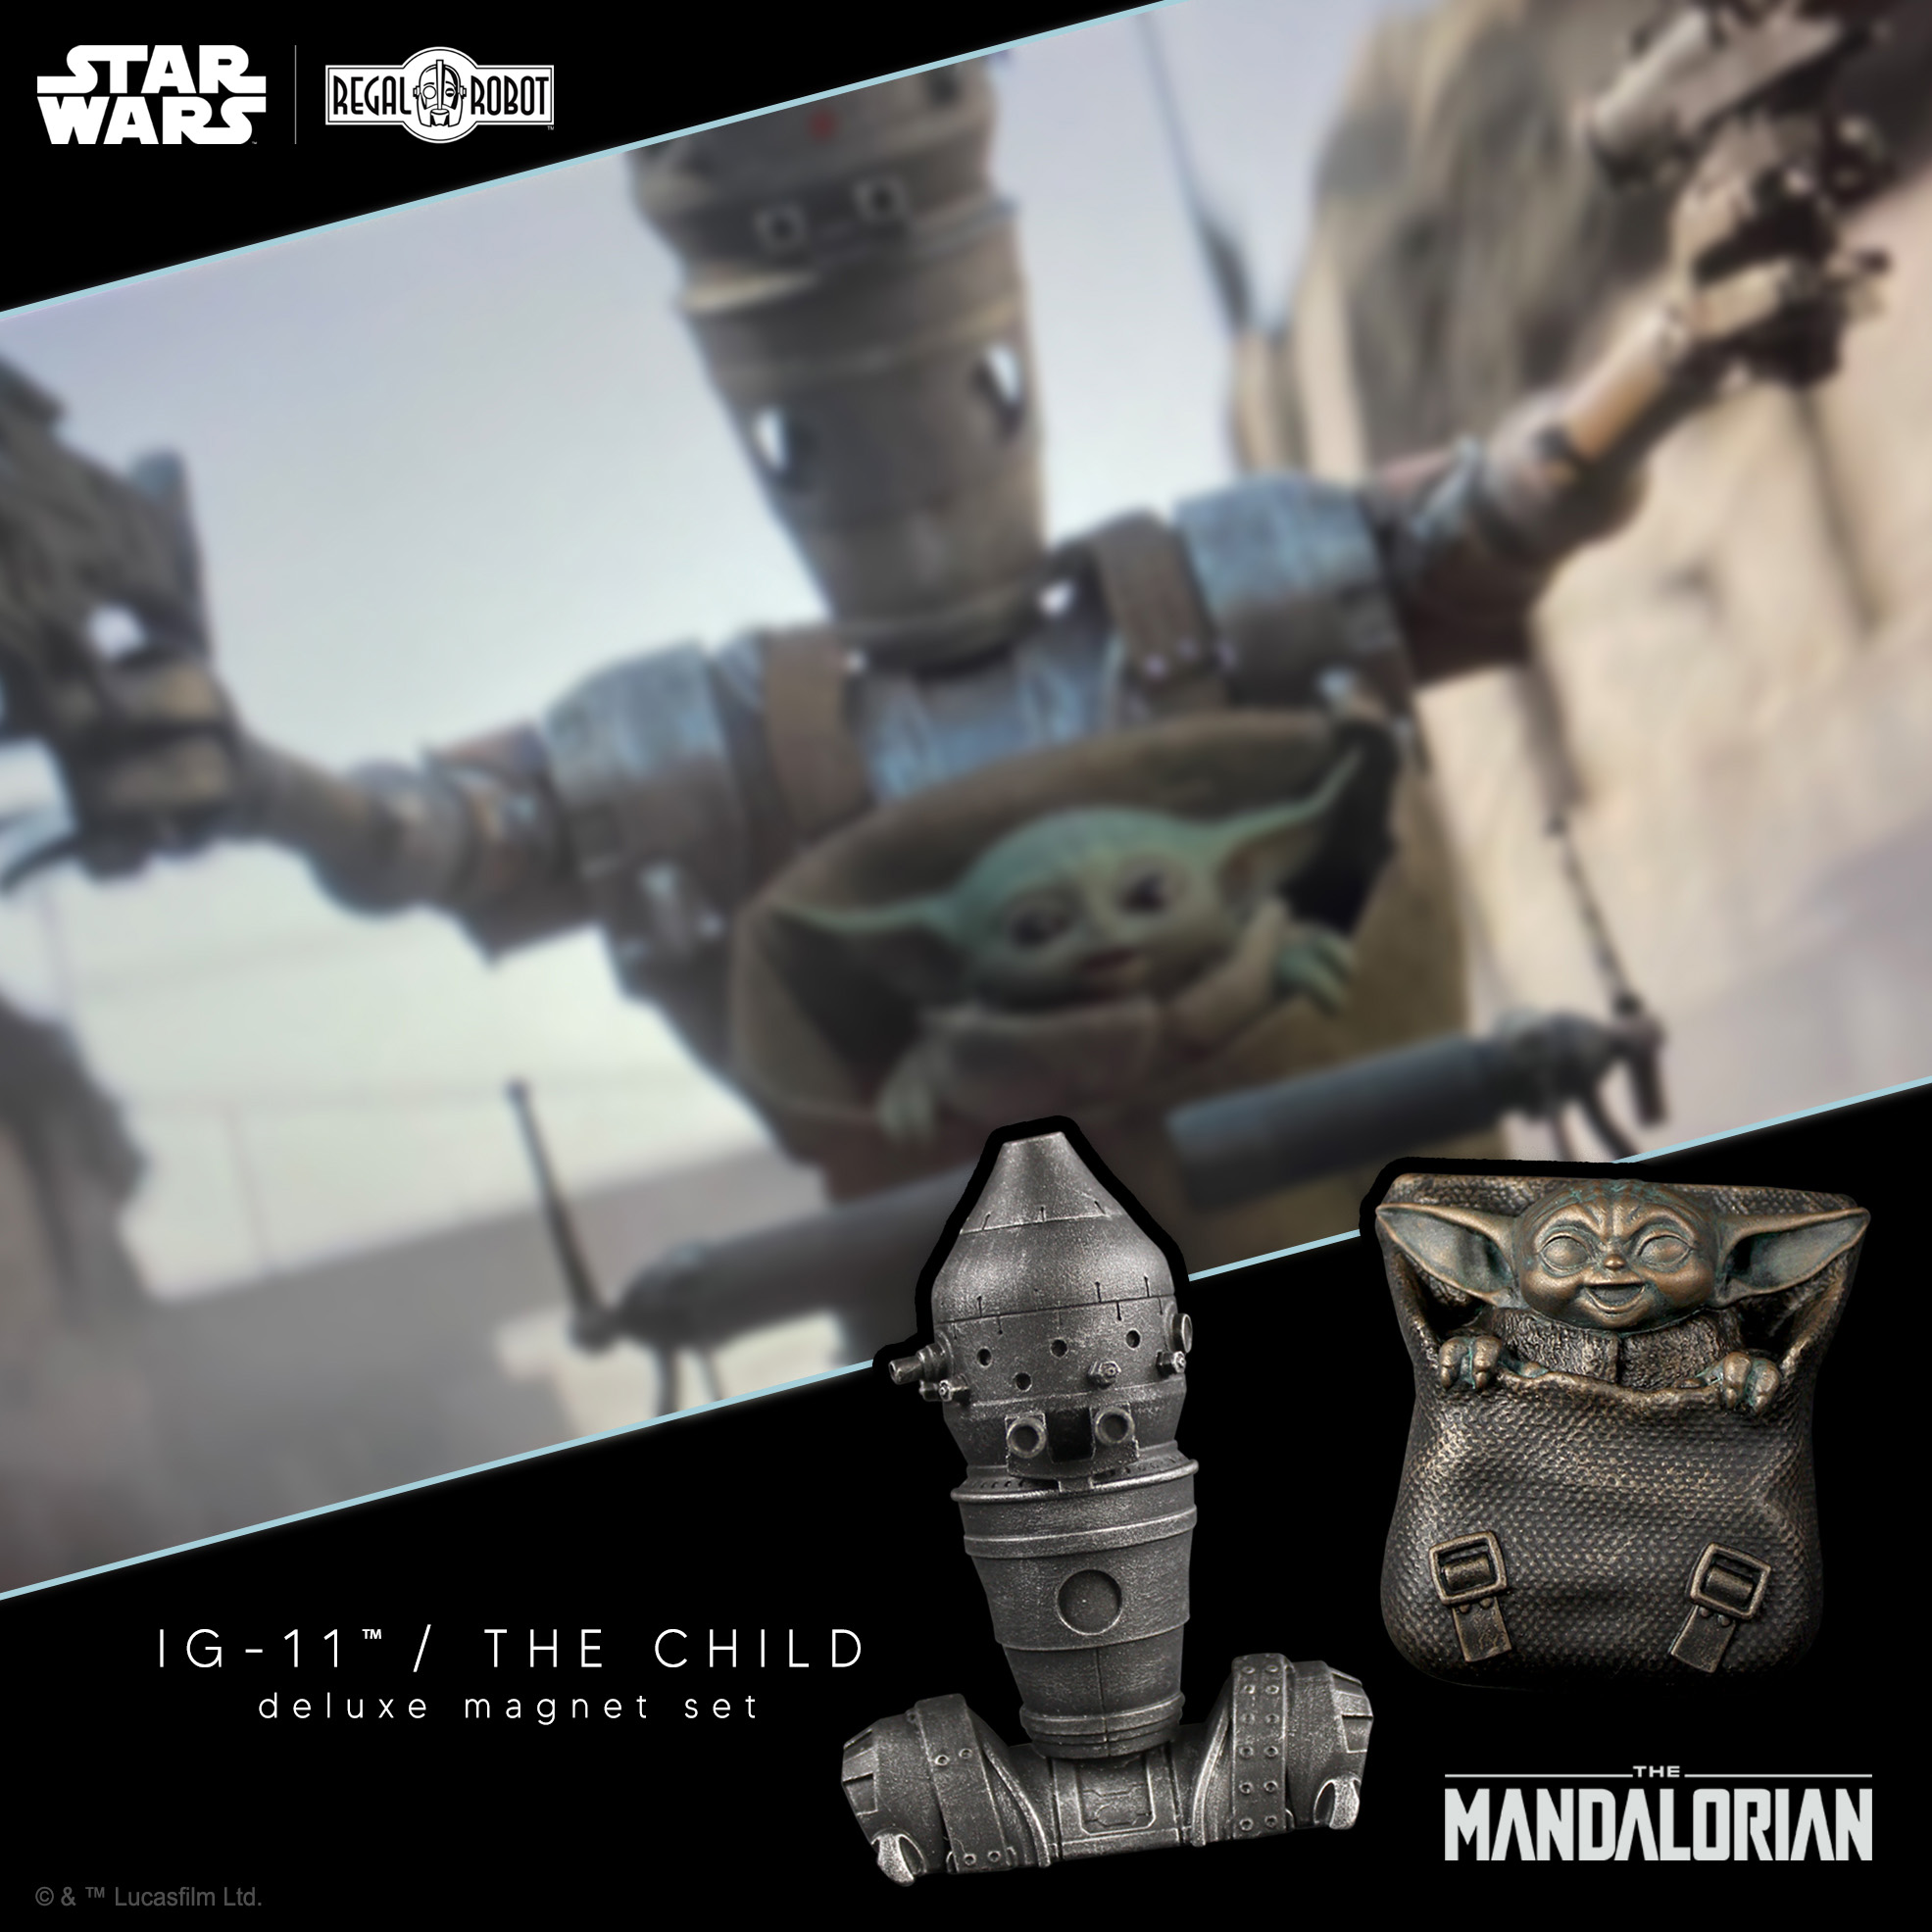 The Mandalorian IG-11 & Baby Yoda aka the Child magnets from Regal Robot